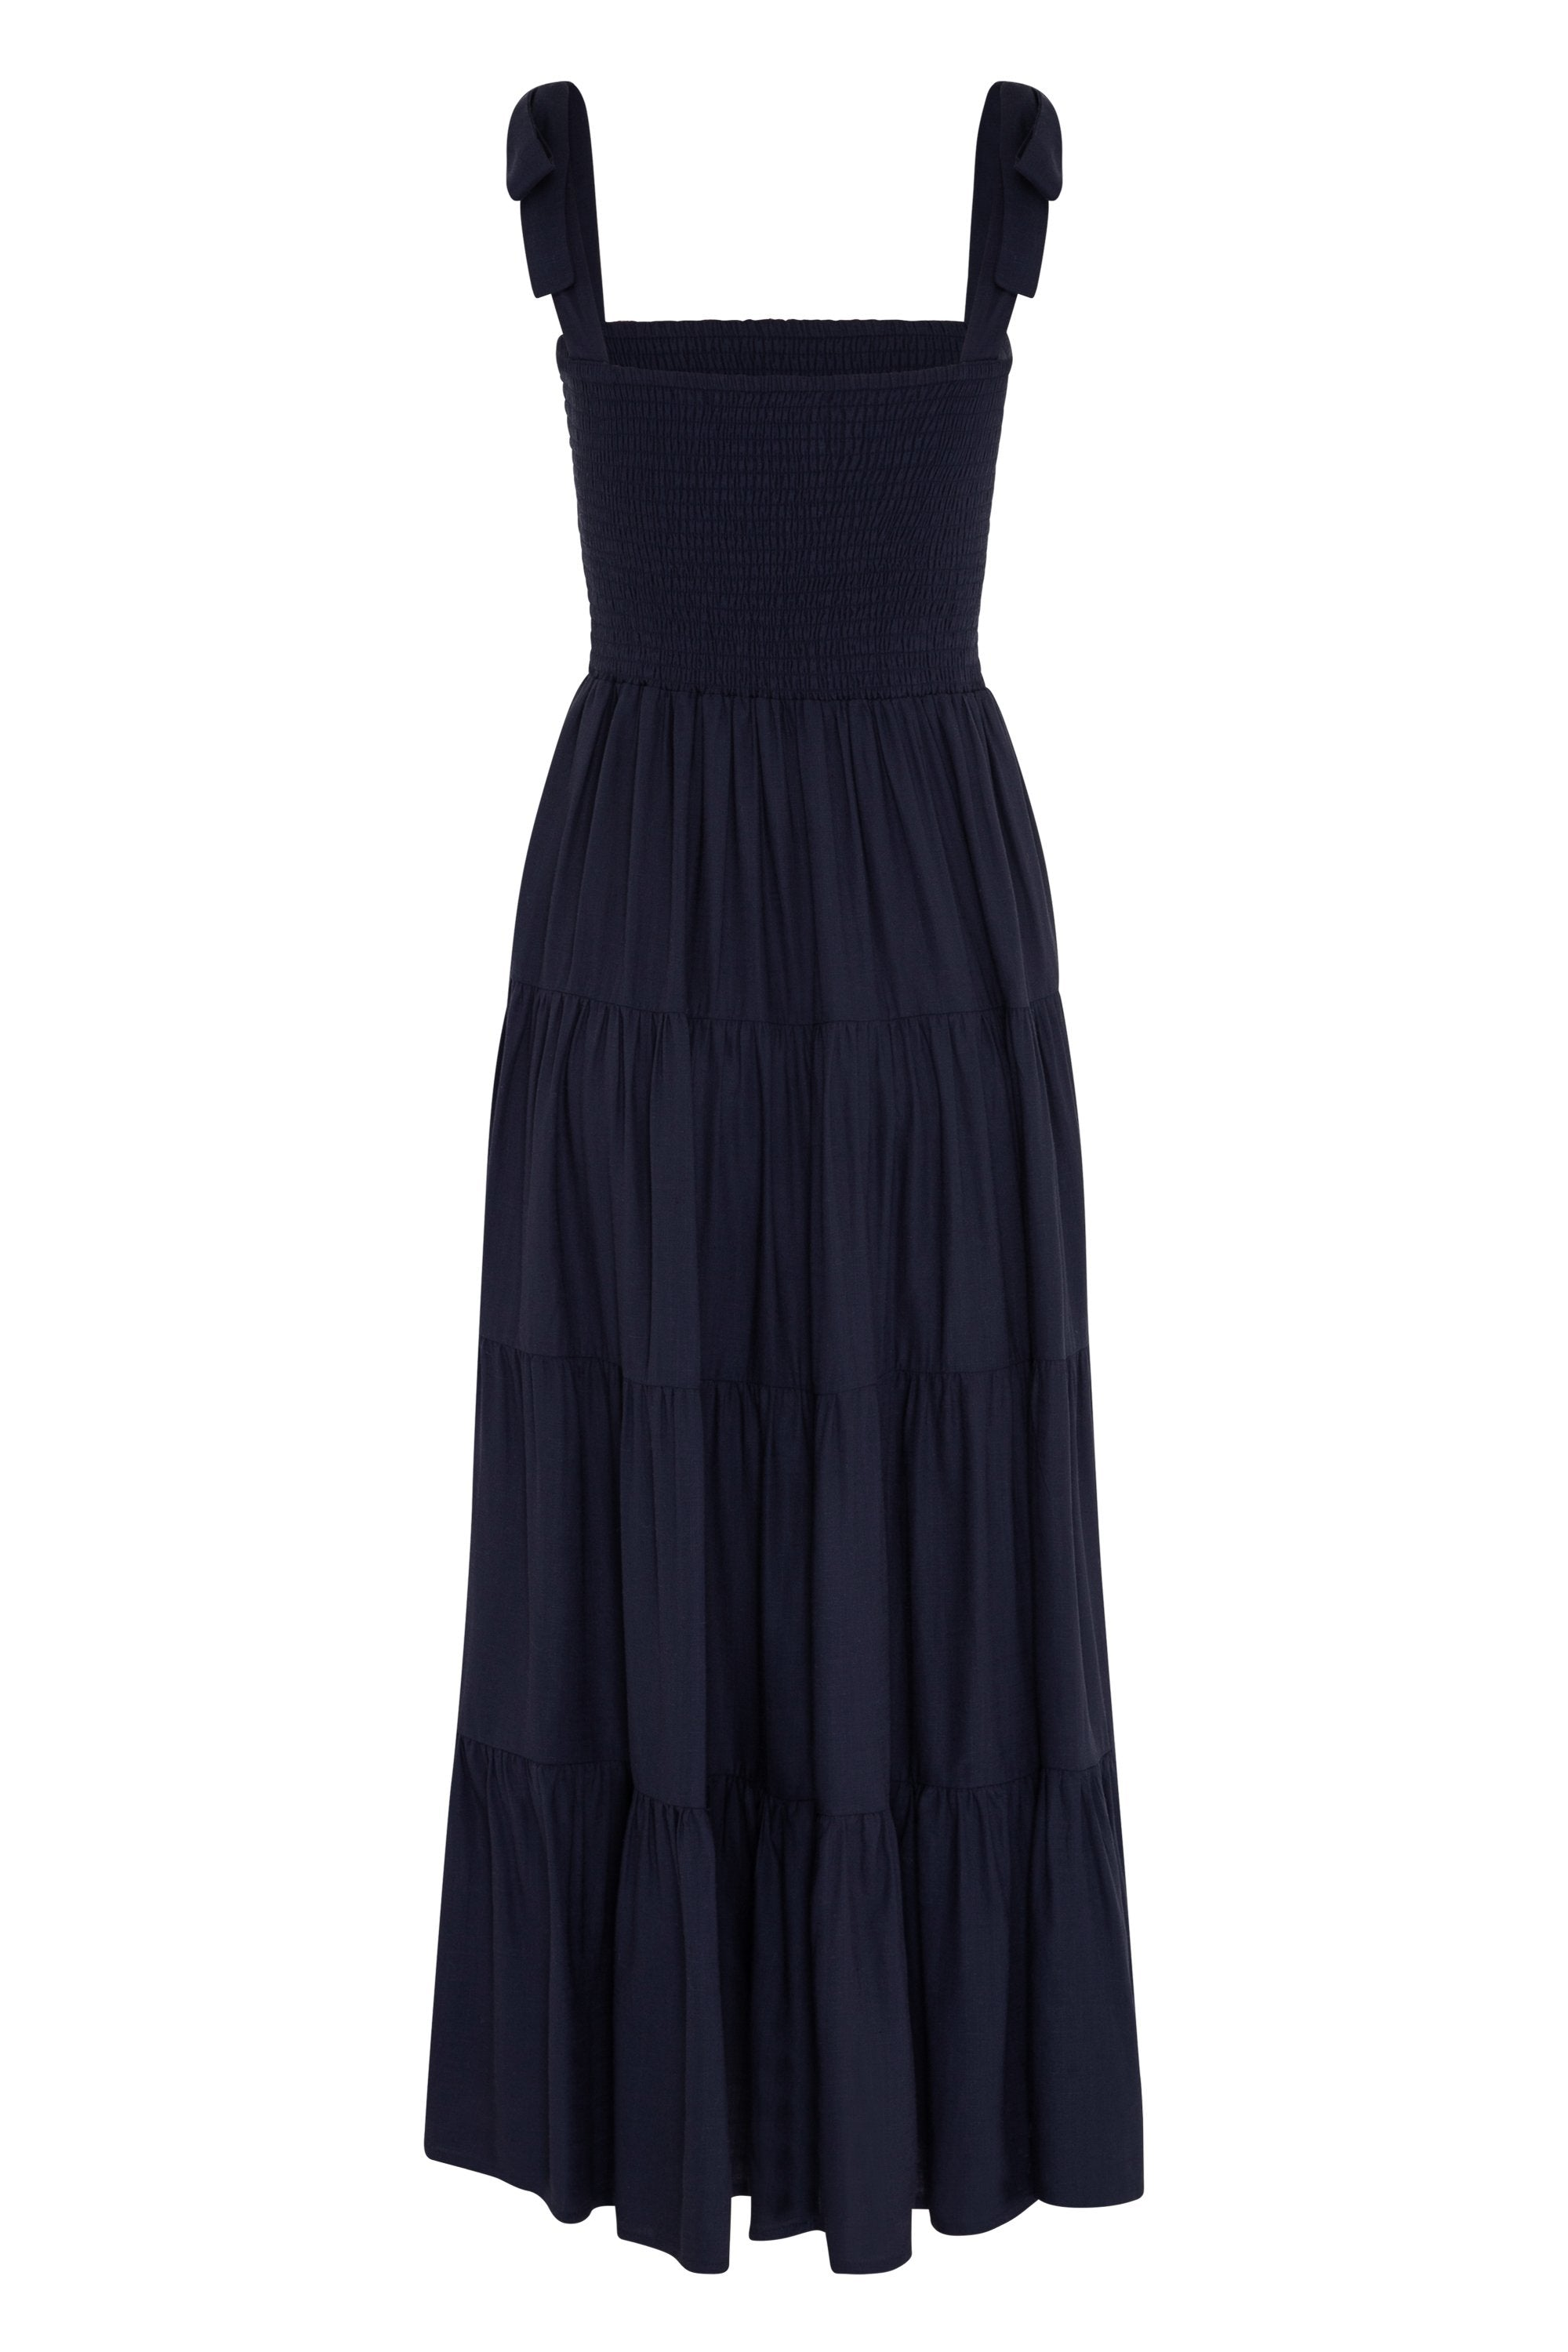 Savannah Tie Dress In Navy